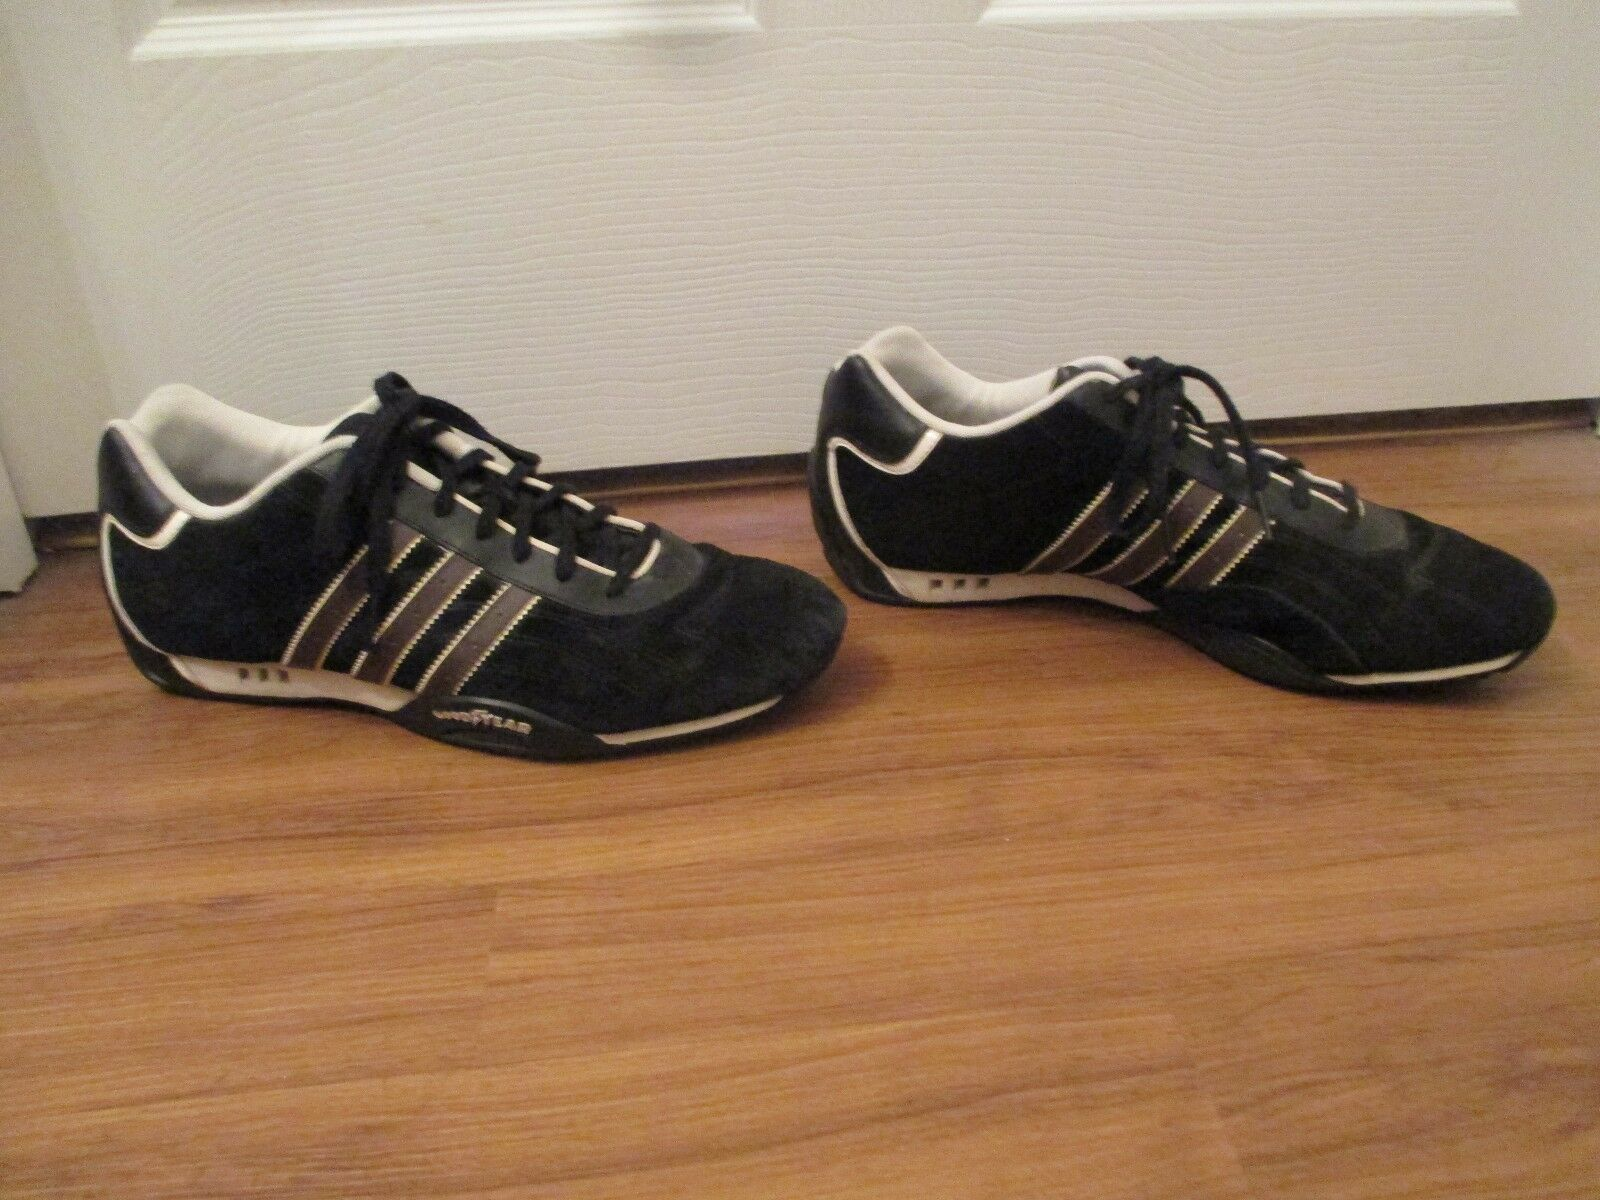 Classic 2005 Used Size 12 Adidas Goodyear Black Adi Racer Low Shoes Black Goodyear Brown White 5755e4